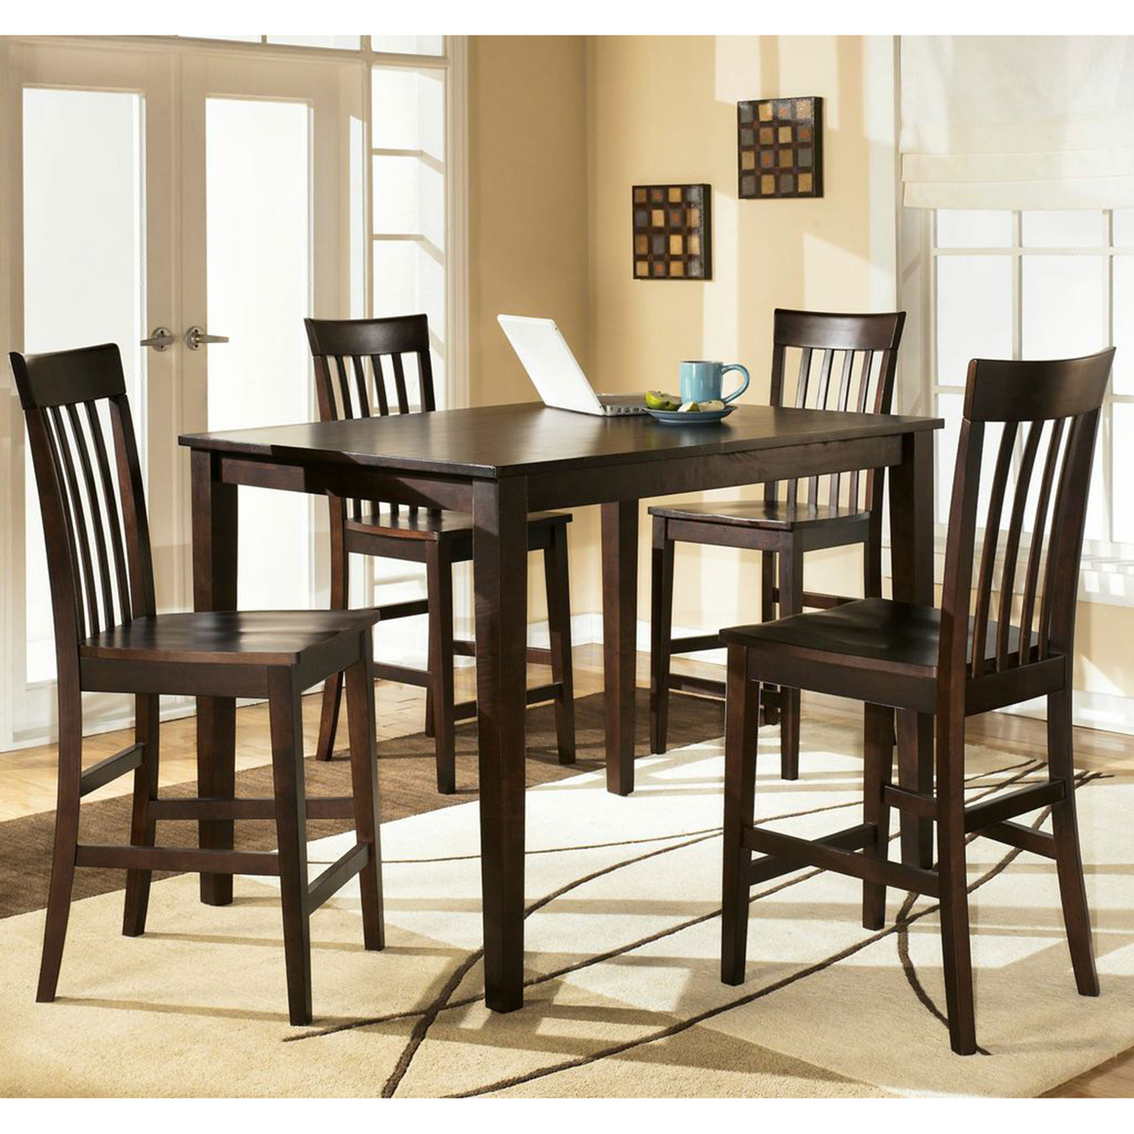 Ashley Furniture Dinette Set: Ashley Hyland 5 Pc. Counter Height Dining Set